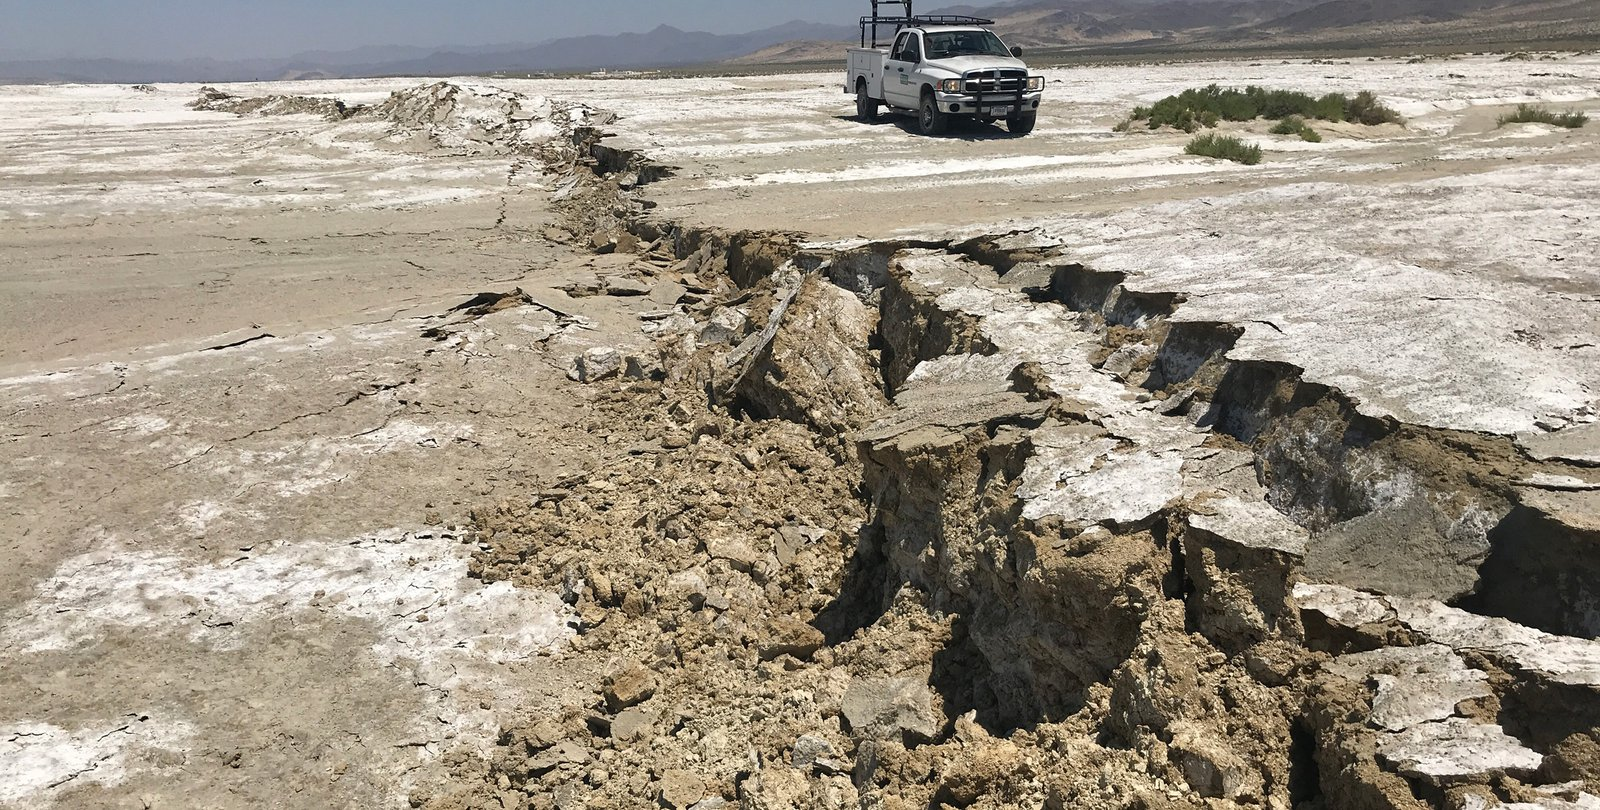 A surface rupture shows ground movement following a pair of large earthquakes that struck near Ridgecrest, CA, on July 4 and 5.